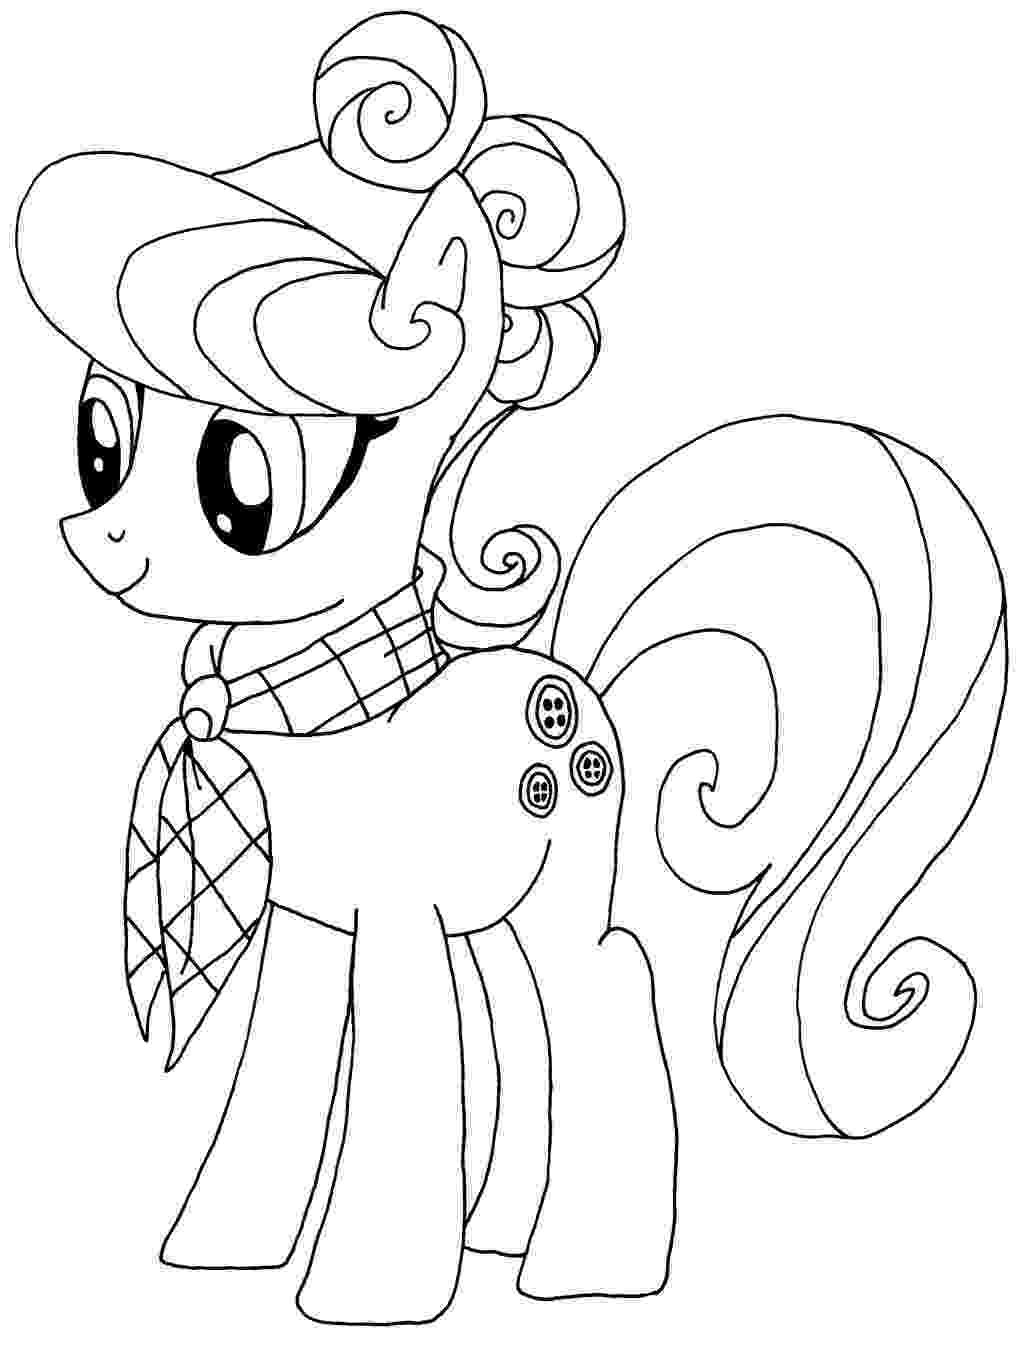 coloring pages of ponies free printable my little pony coloring pages for kids ponies coloring pages of